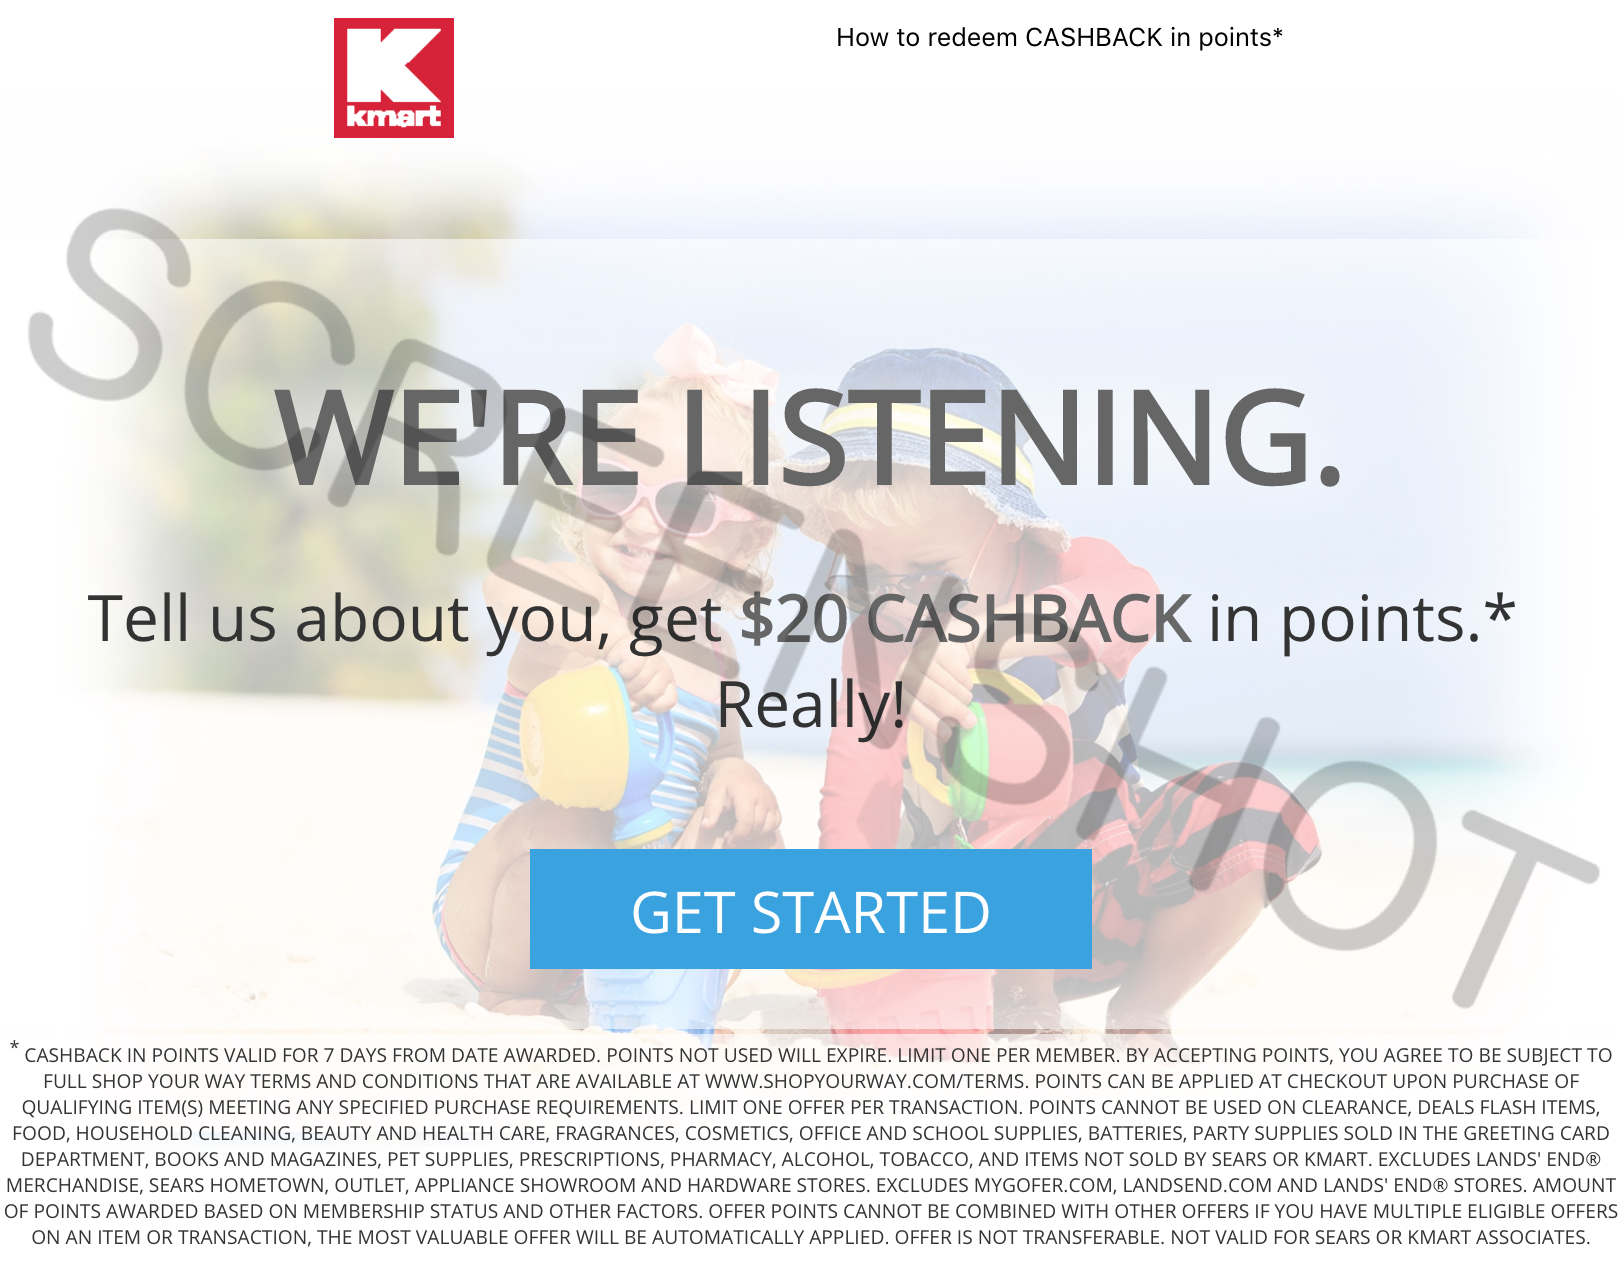 FREE $20 To Spend at Kmart or Sears